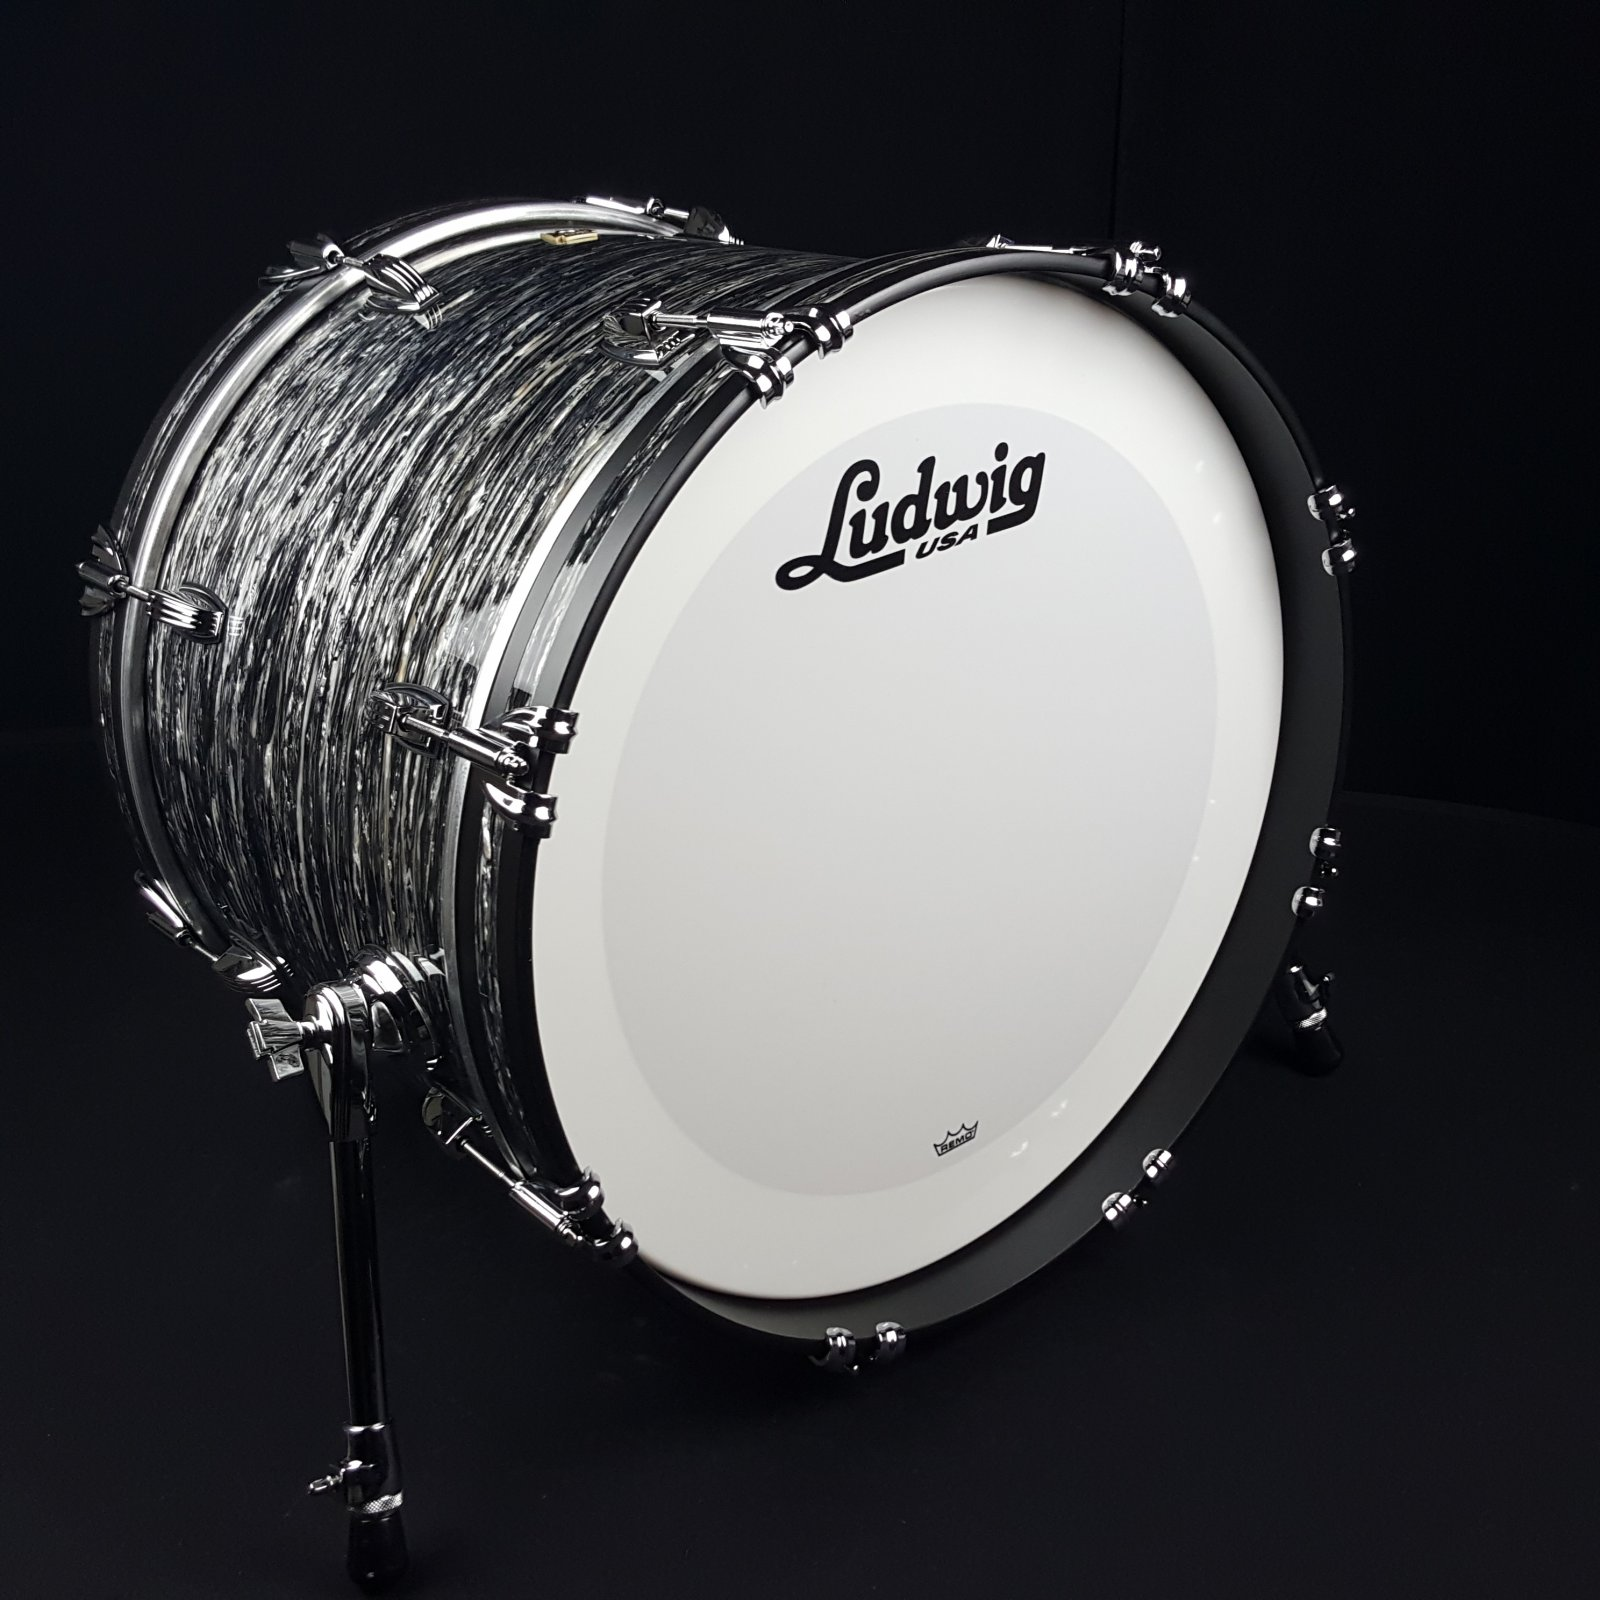 Ludwig Classic Maple 20 12 14 3pc Shell Pack Vintage Black Oyster